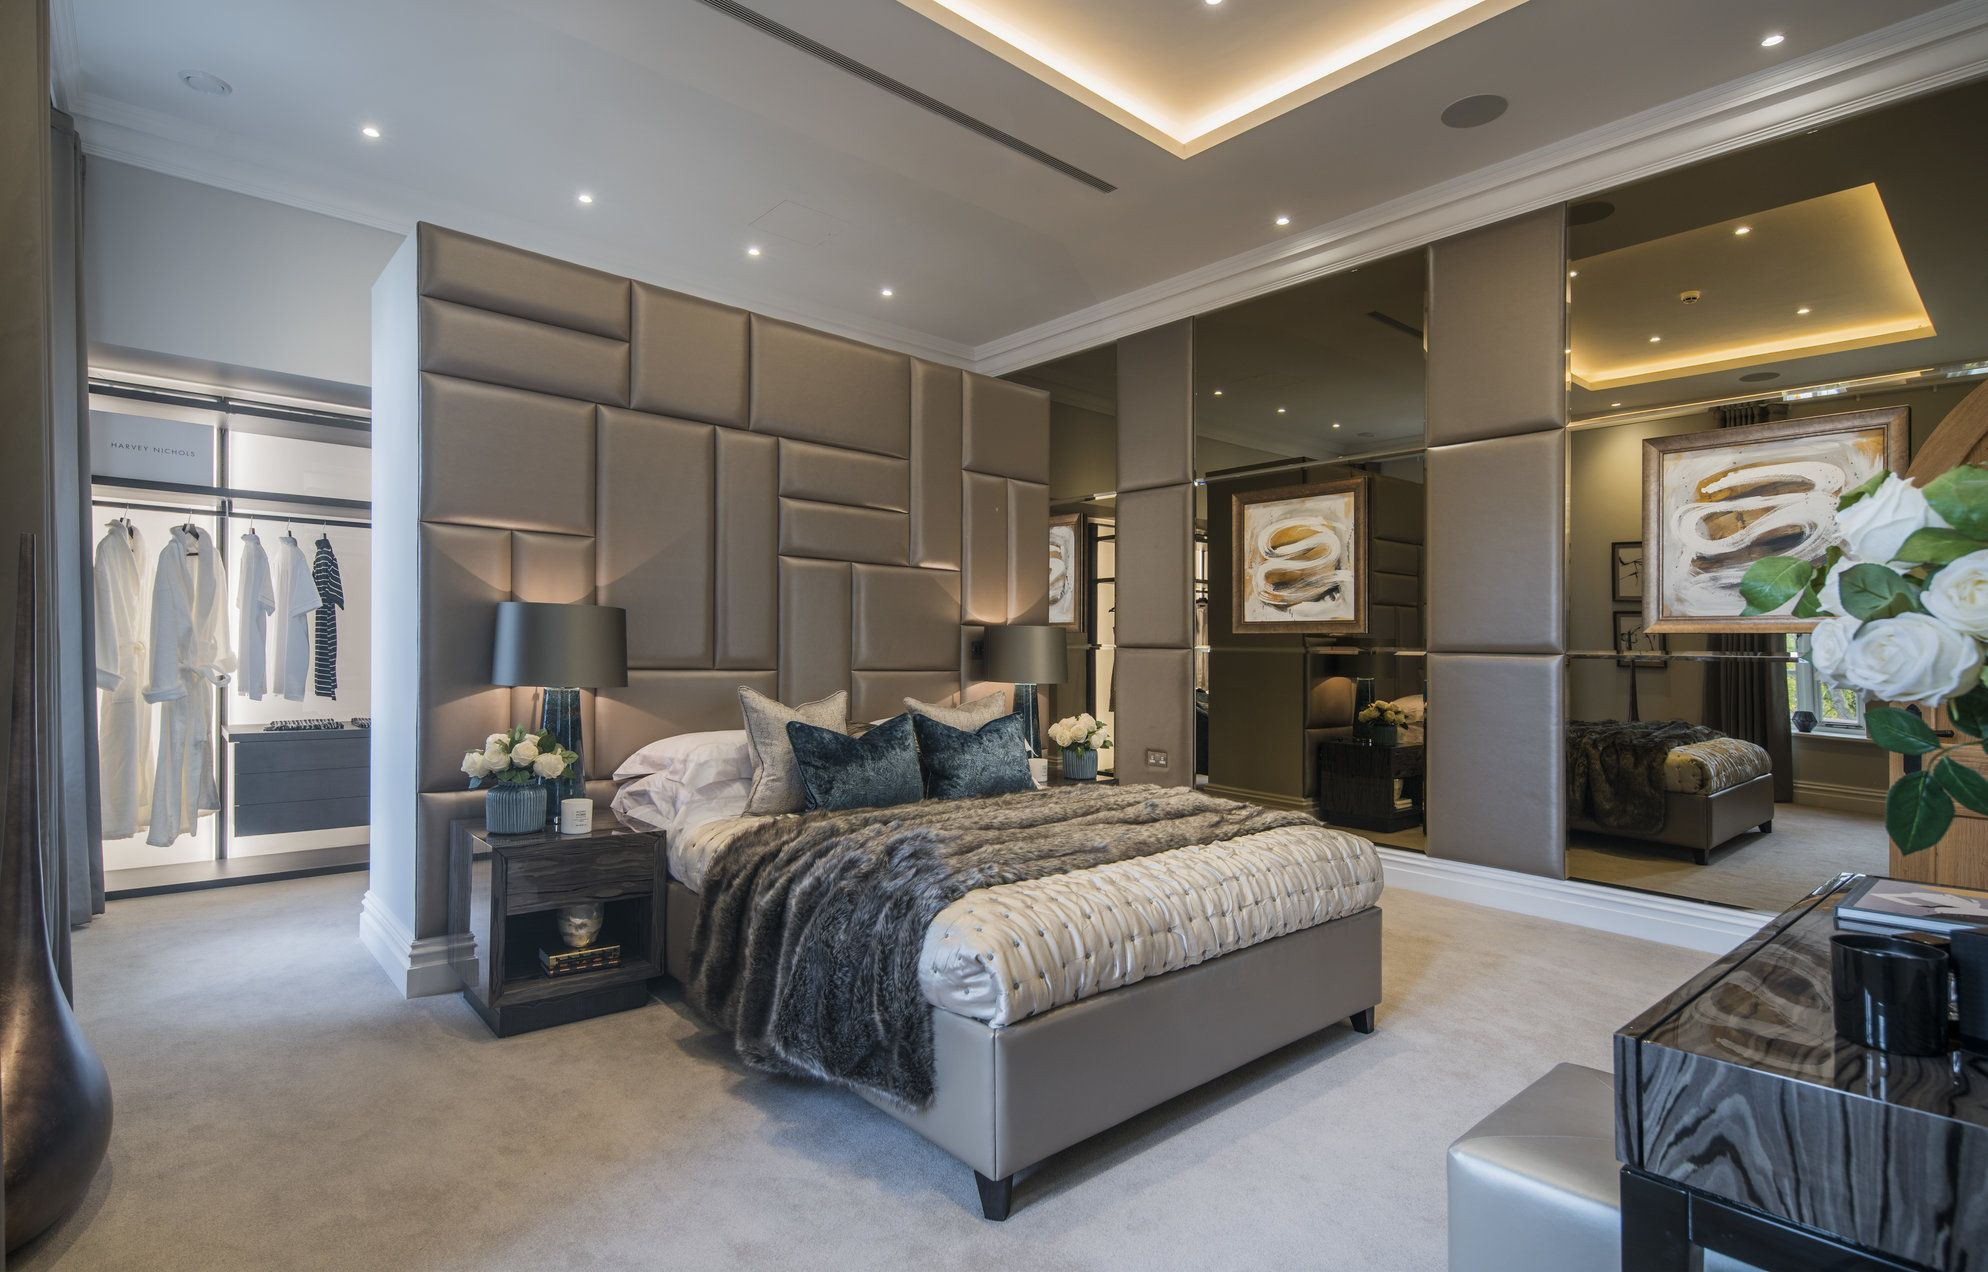 Best The Luxurious Bedroom In Our London Chapel Conversion 400 x 300